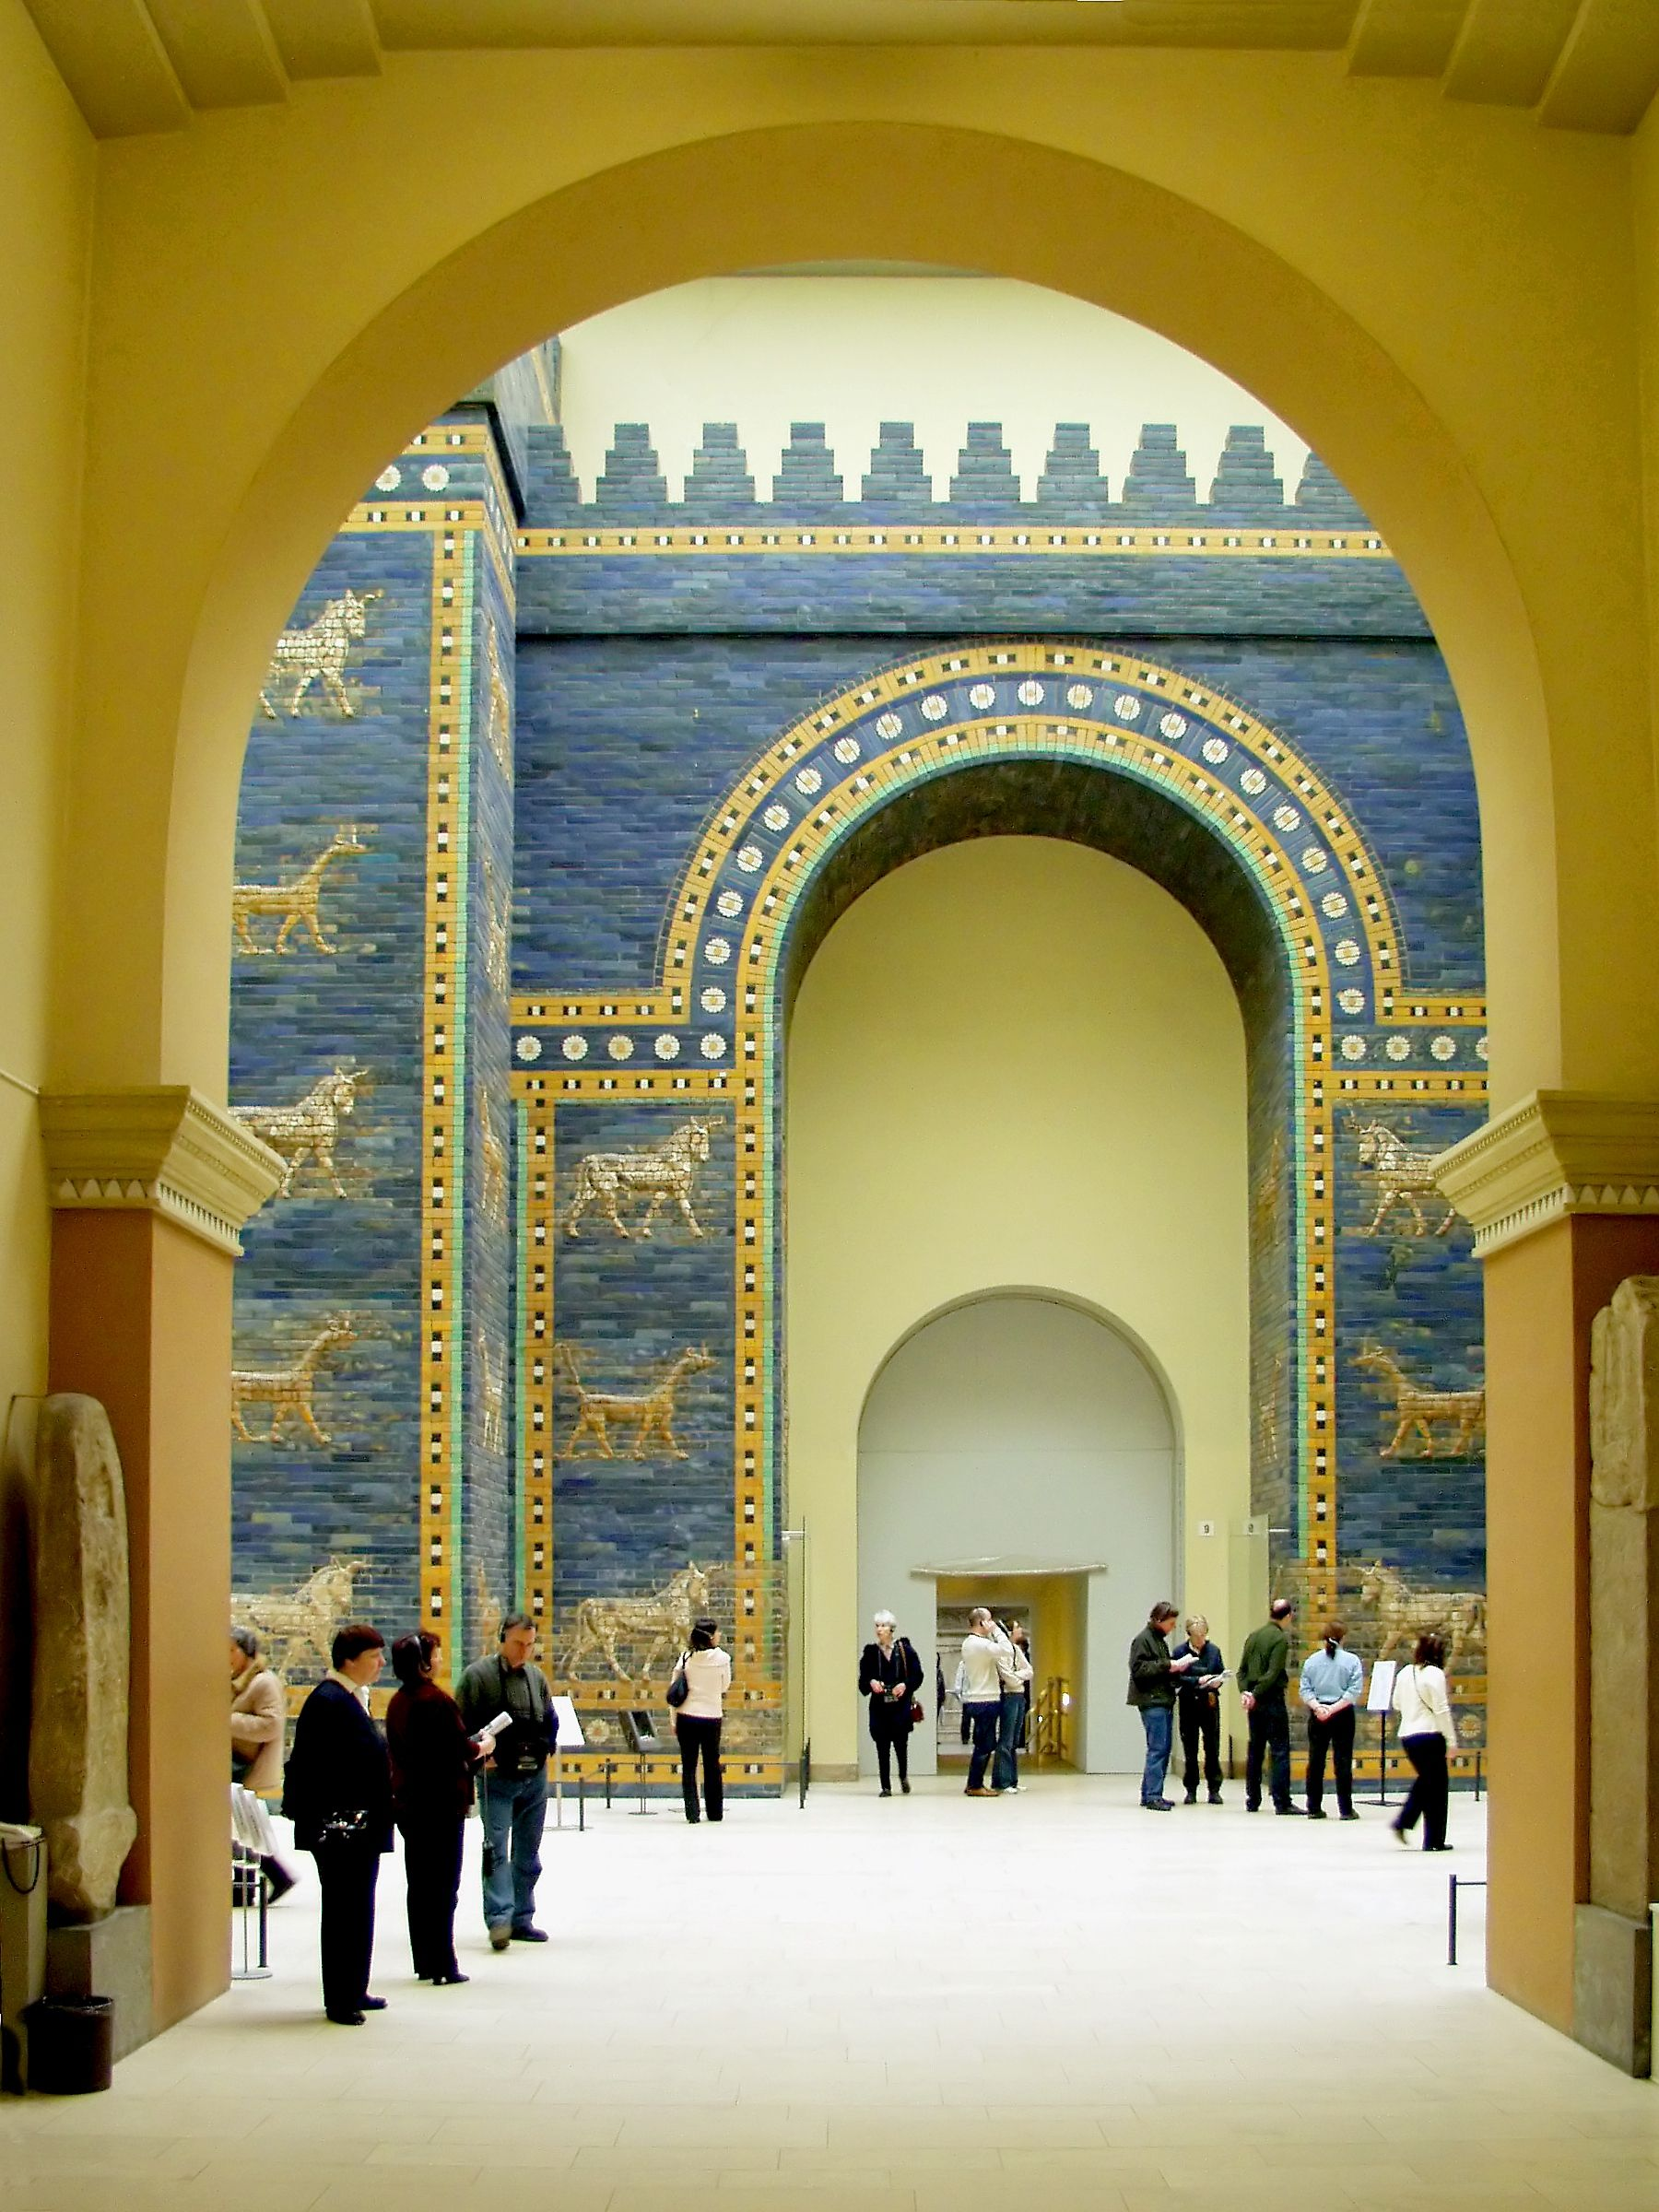 August 2013 The Ishtar Gate In The Pergamon Museum In Berlin Germany The Gate Was Part Of The Walls Of Babyl Pergamon Museum Pergamon Museum Berlin Pergamon